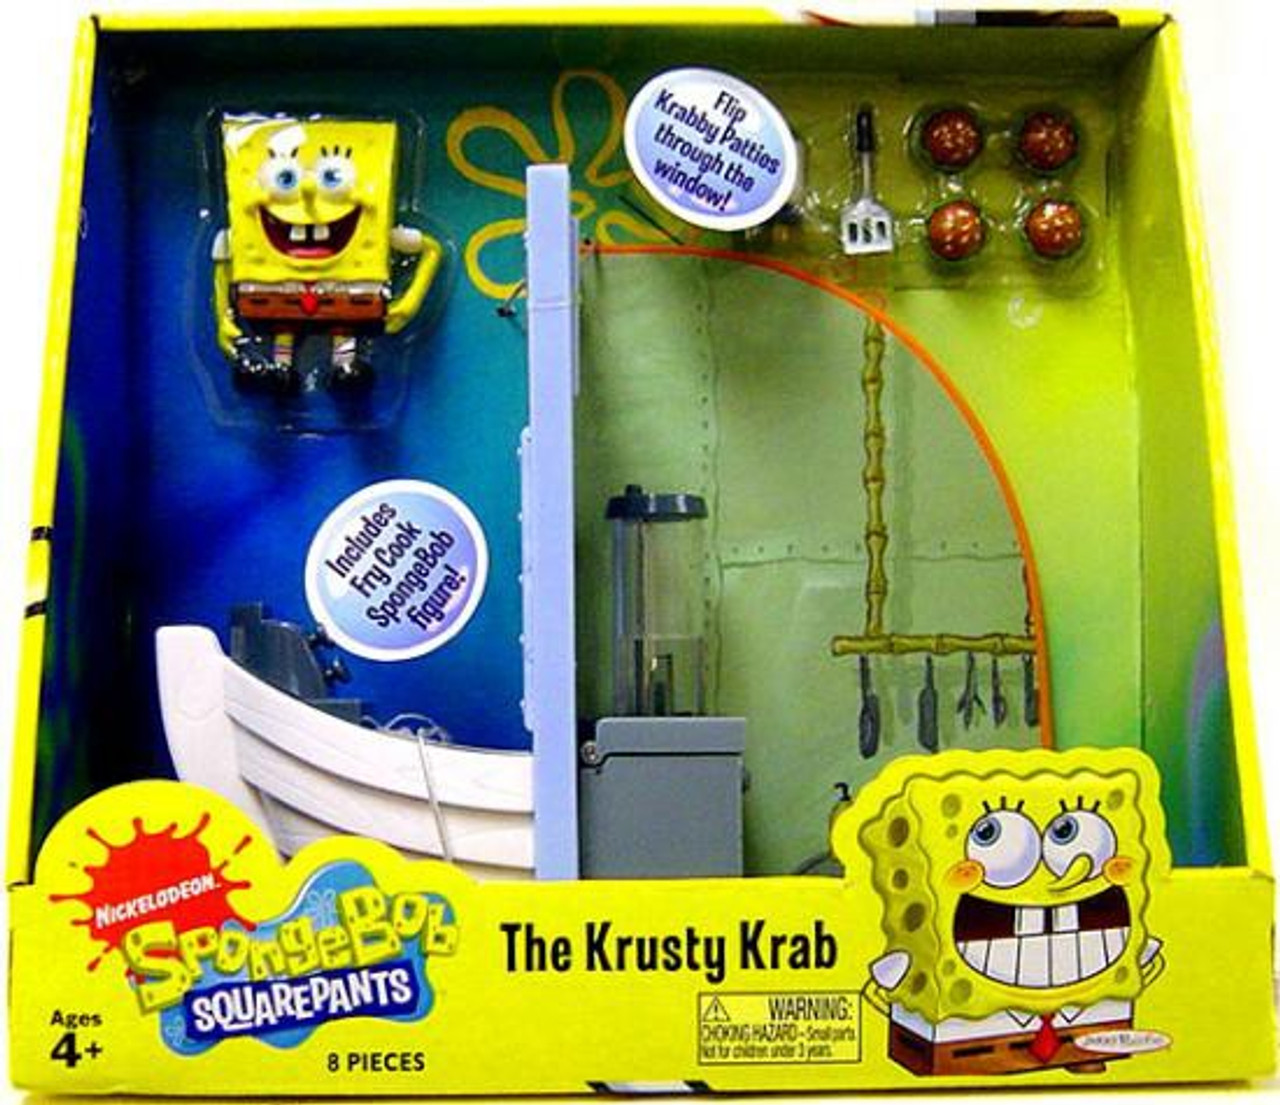 Spongebob Squarepants The Krusty Krab Playset